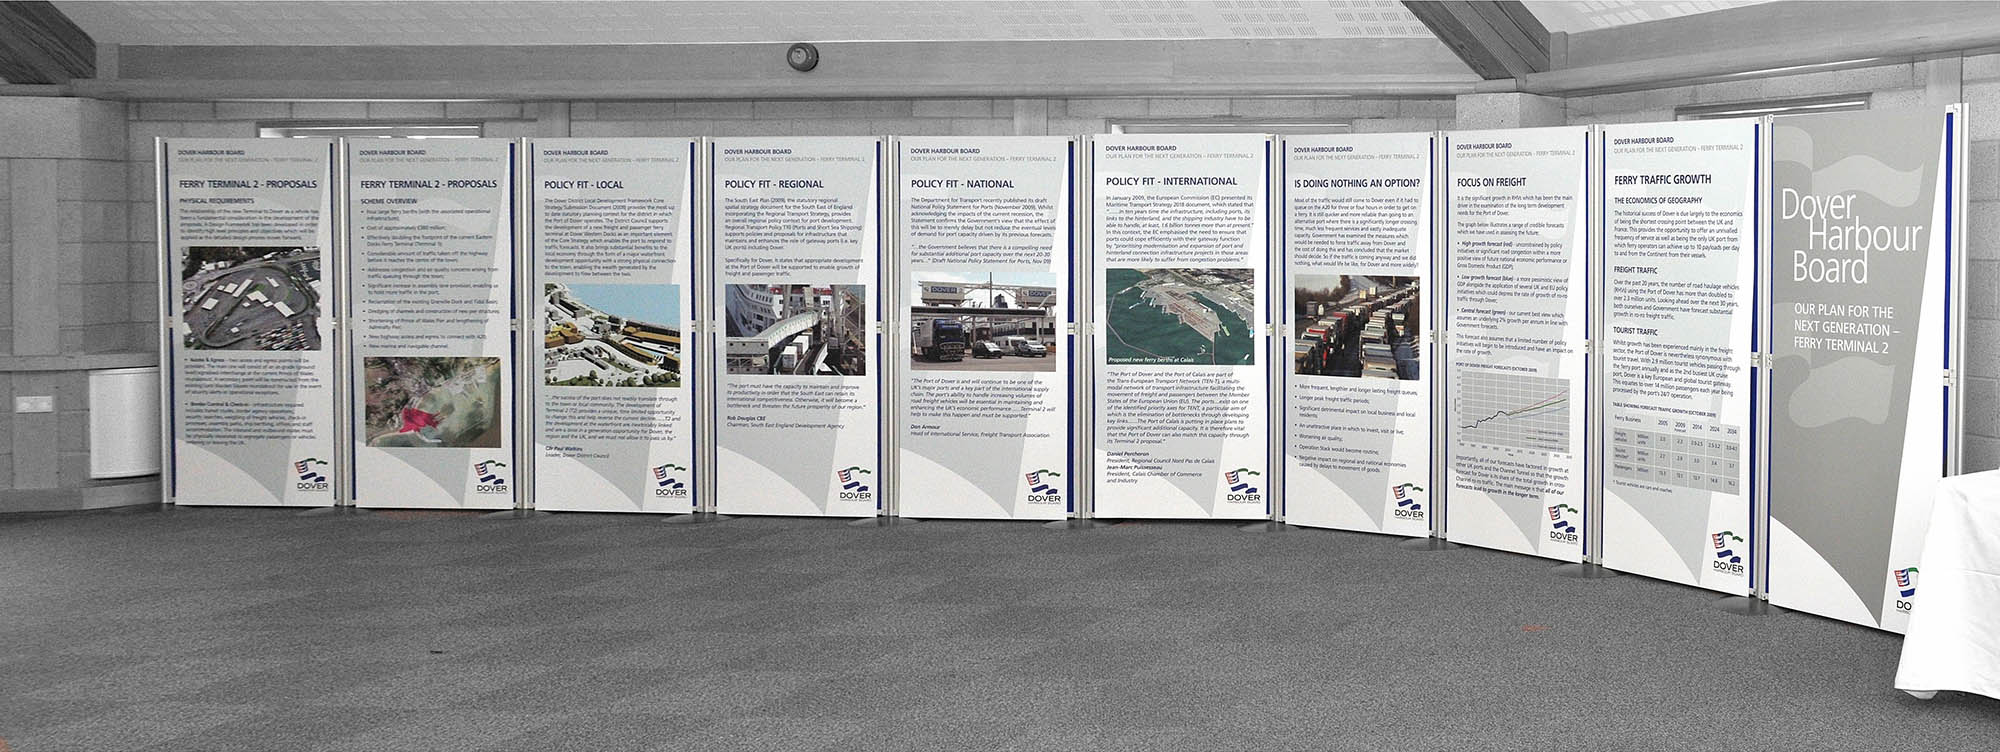 slider_wide_format_printing_exhibition_1